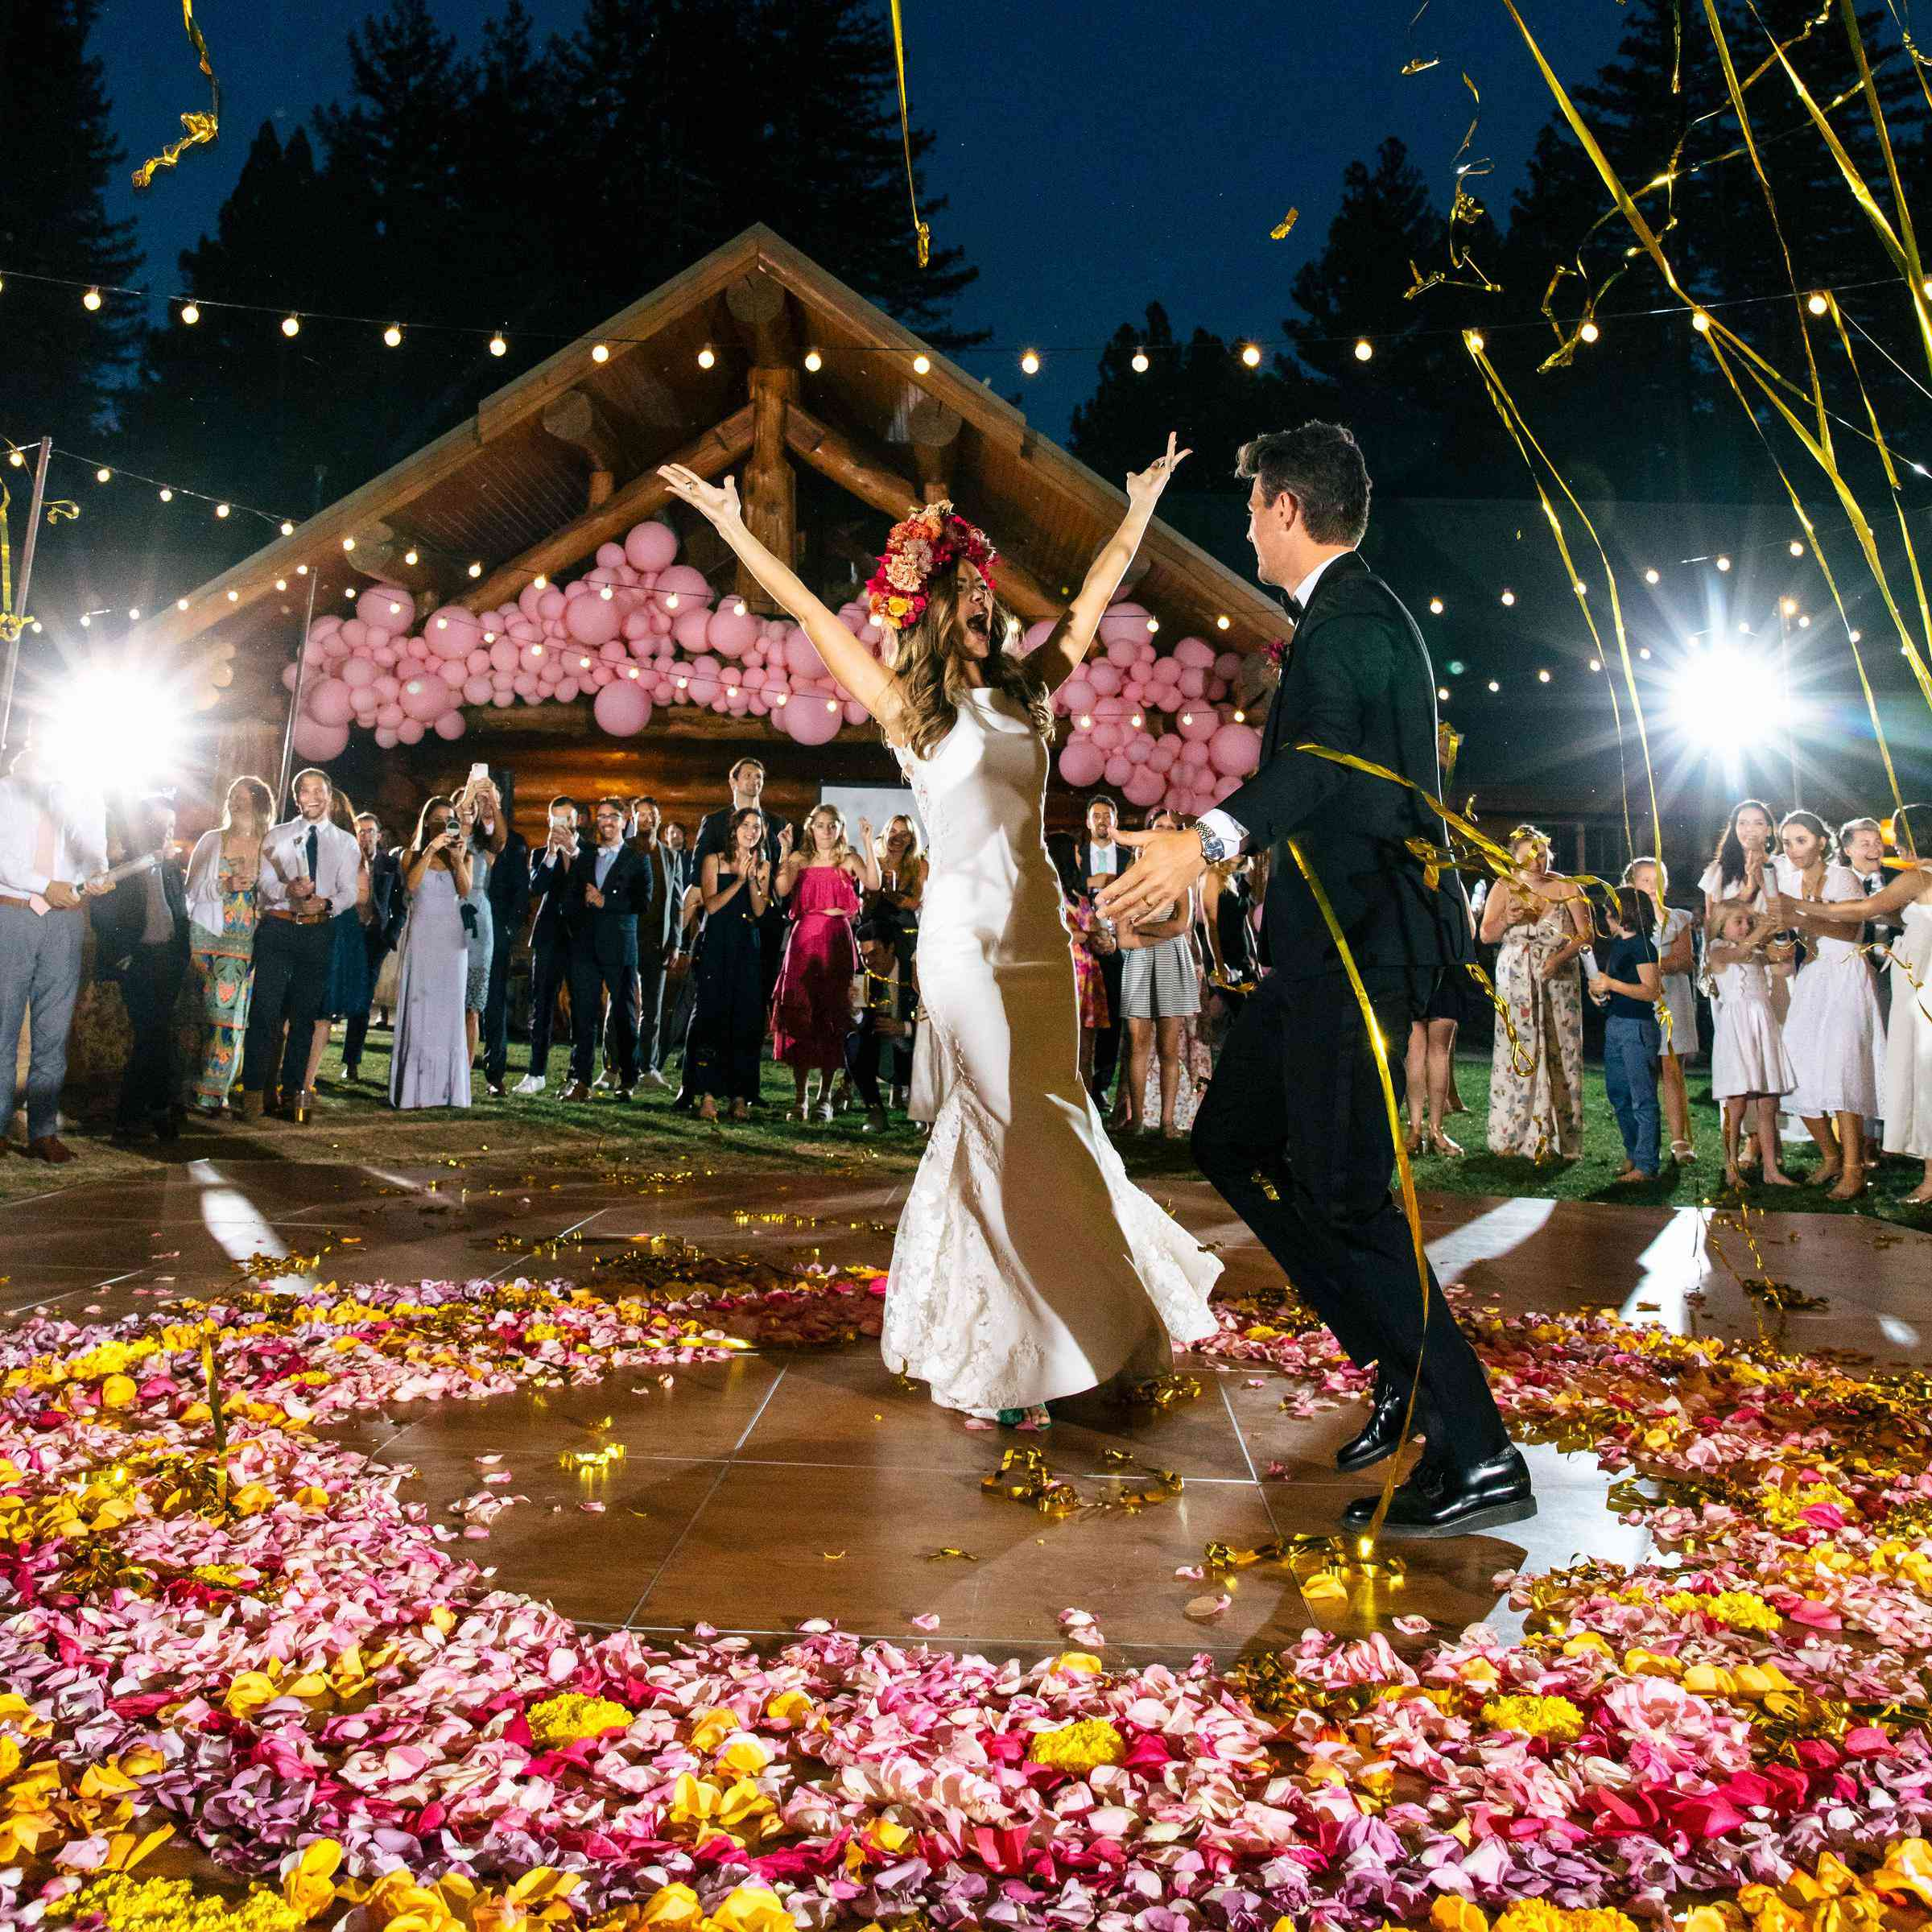 Good Wedding Songs.The 38 Best Wedding Songs For A Summertime Celebration